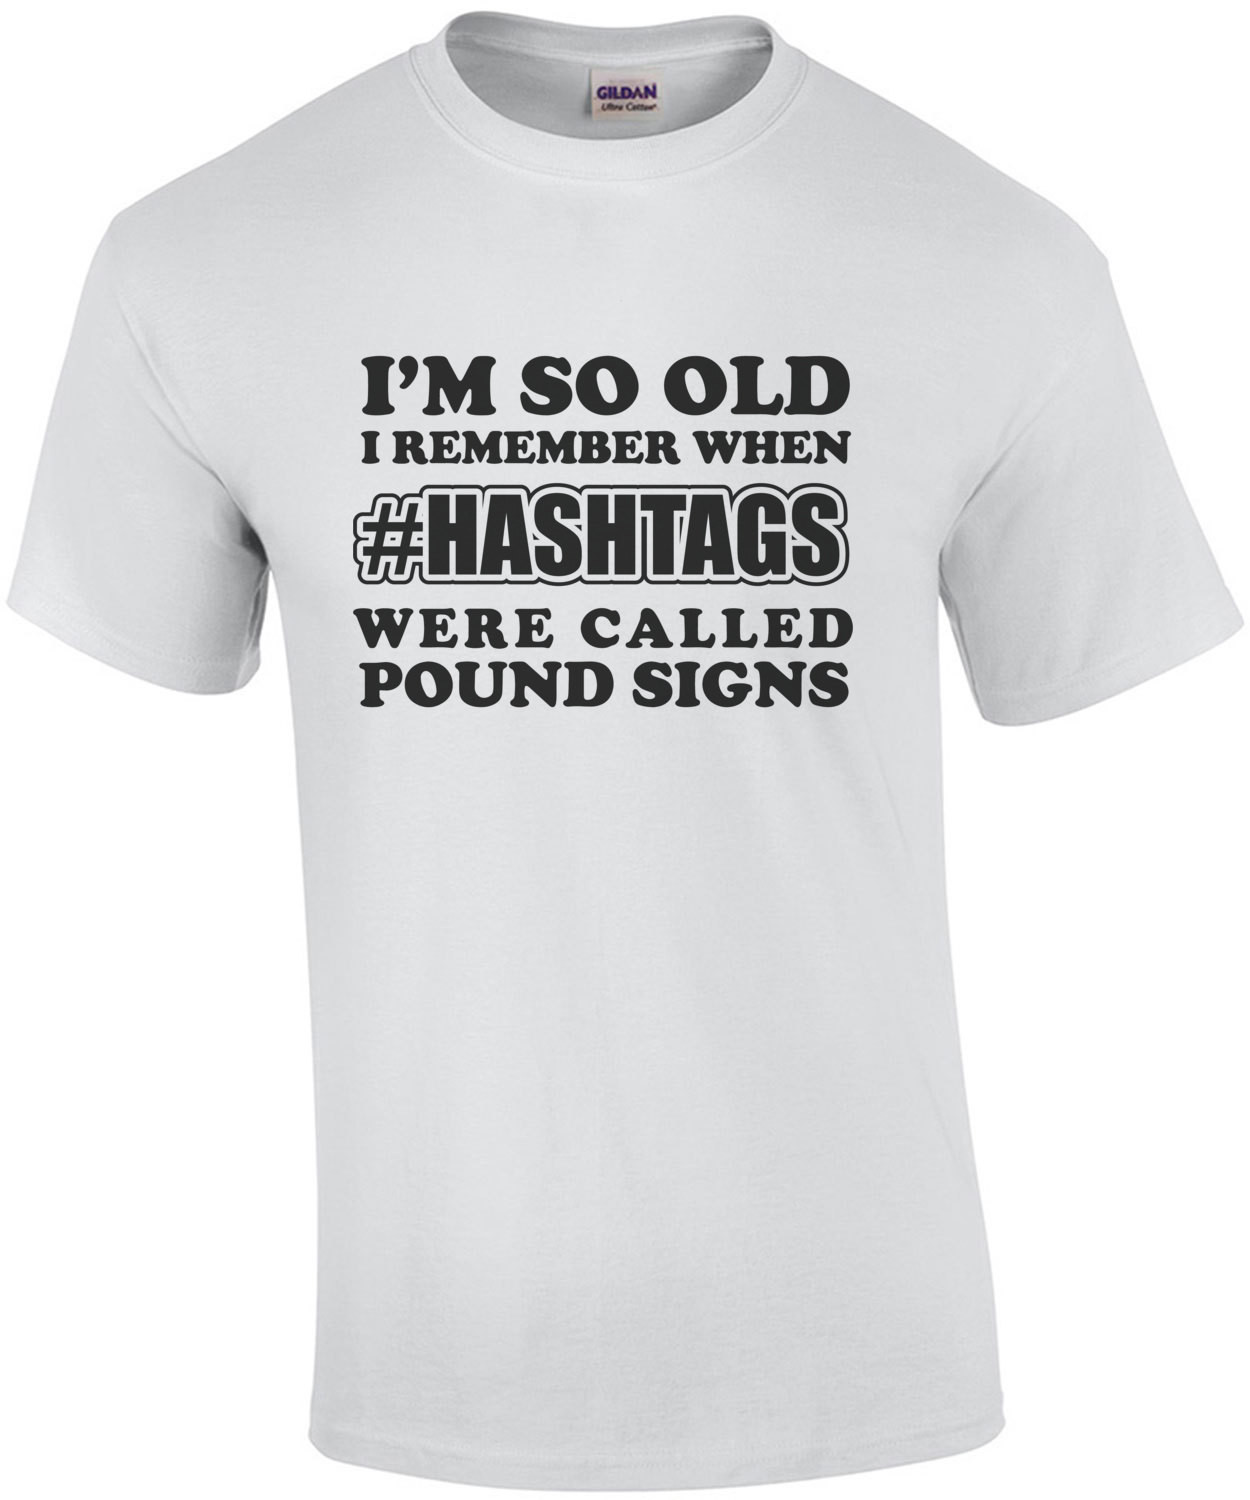 I'm so old I remember when #hashtags were called pound signs - funny t-shirt